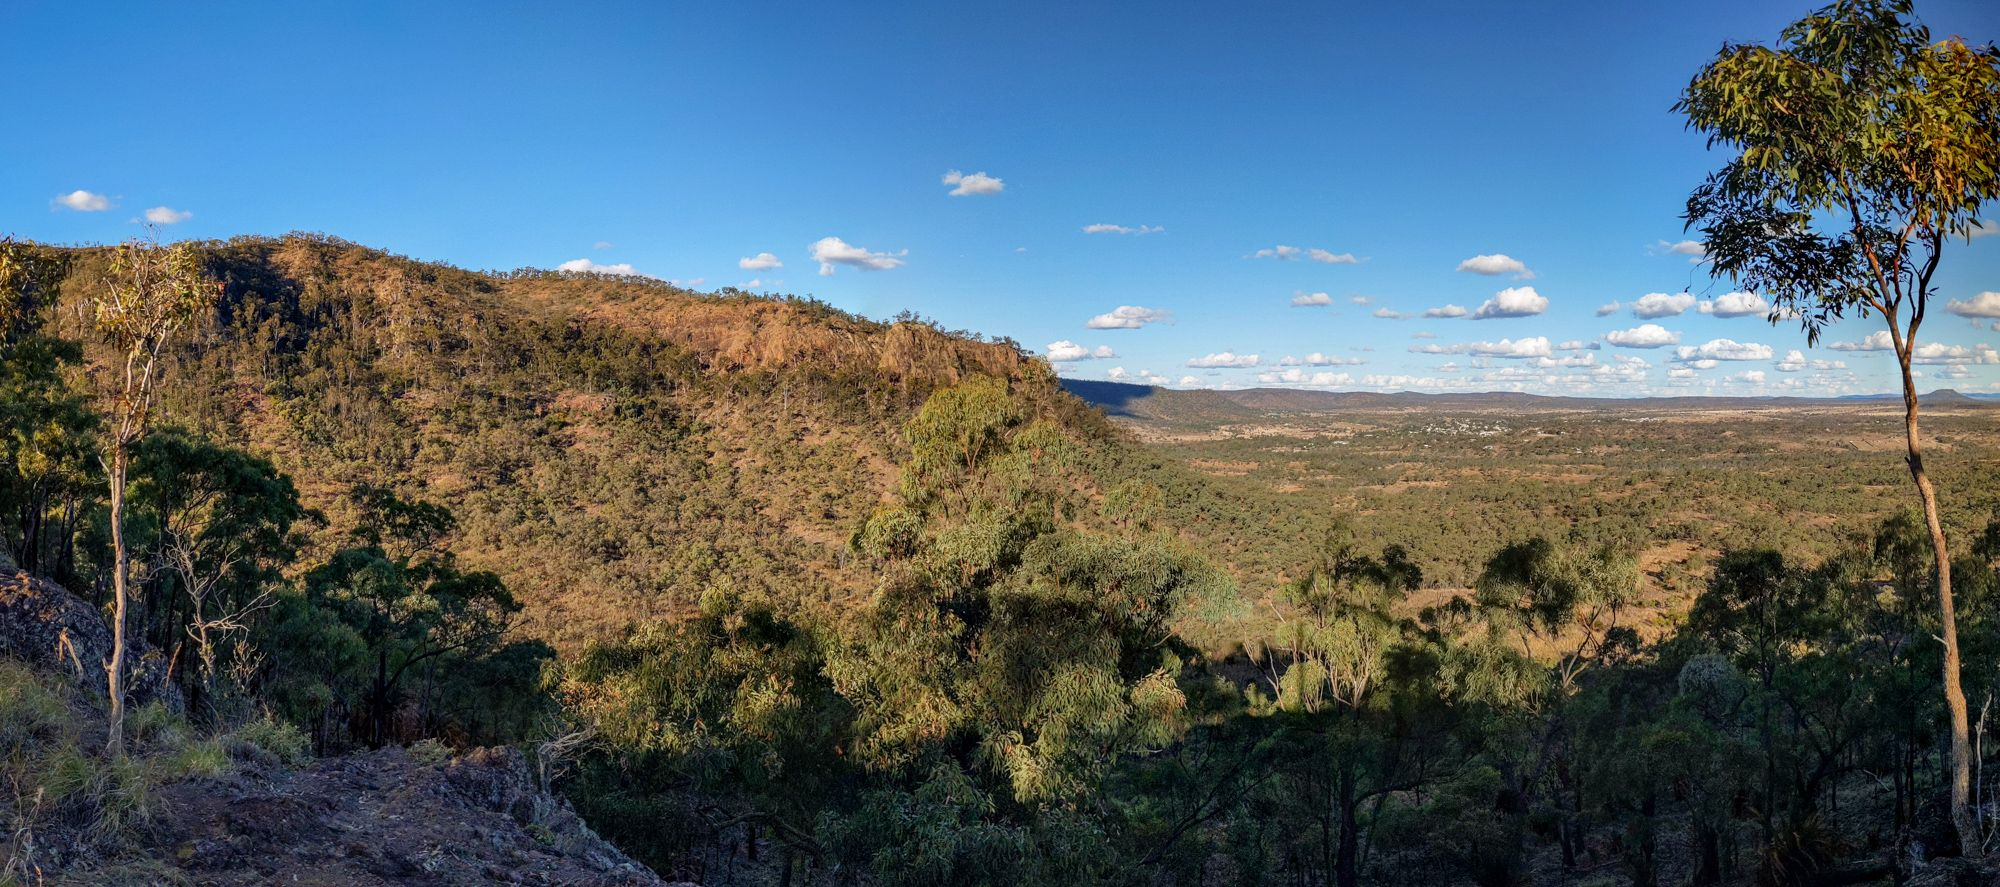 Springsure Lookout Minerva Hills National Park